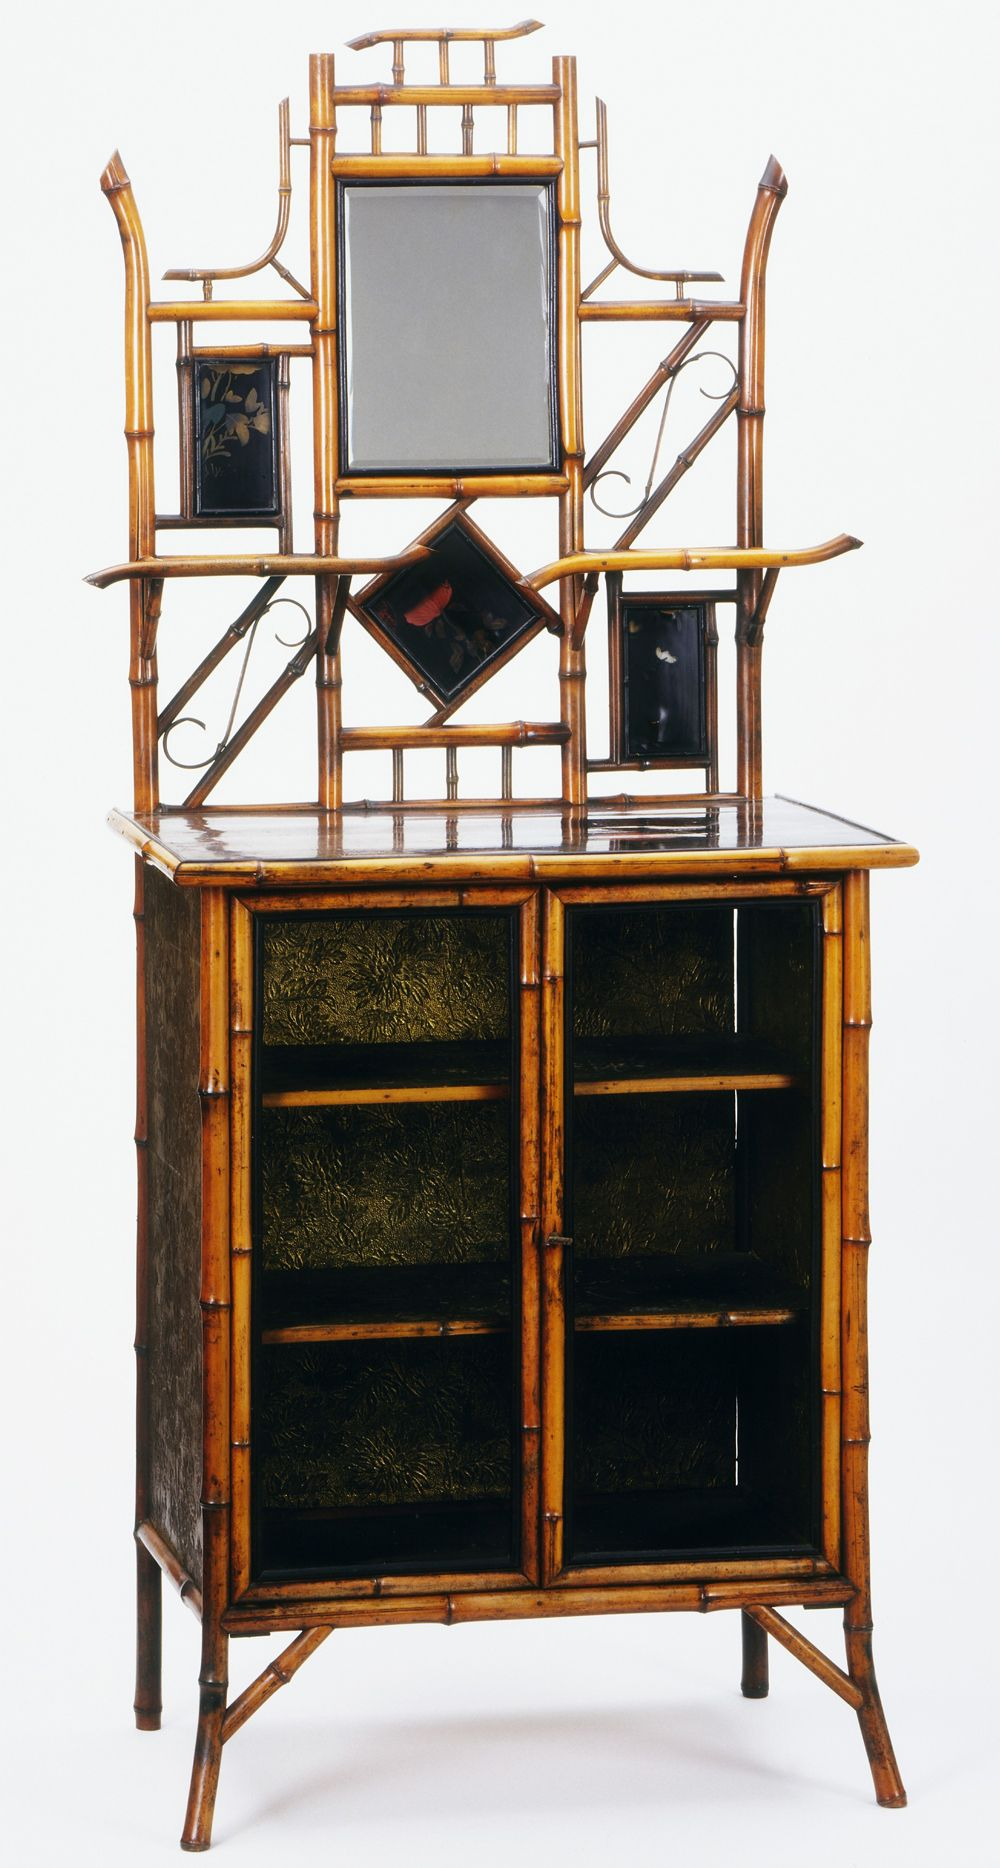 Cabinet Jean Baptiste Kohn About 1910 Bamboo With Lacquer Panels Embossed Paper And A Mirror Mobilier De Salon Meuble Bambou Decoration